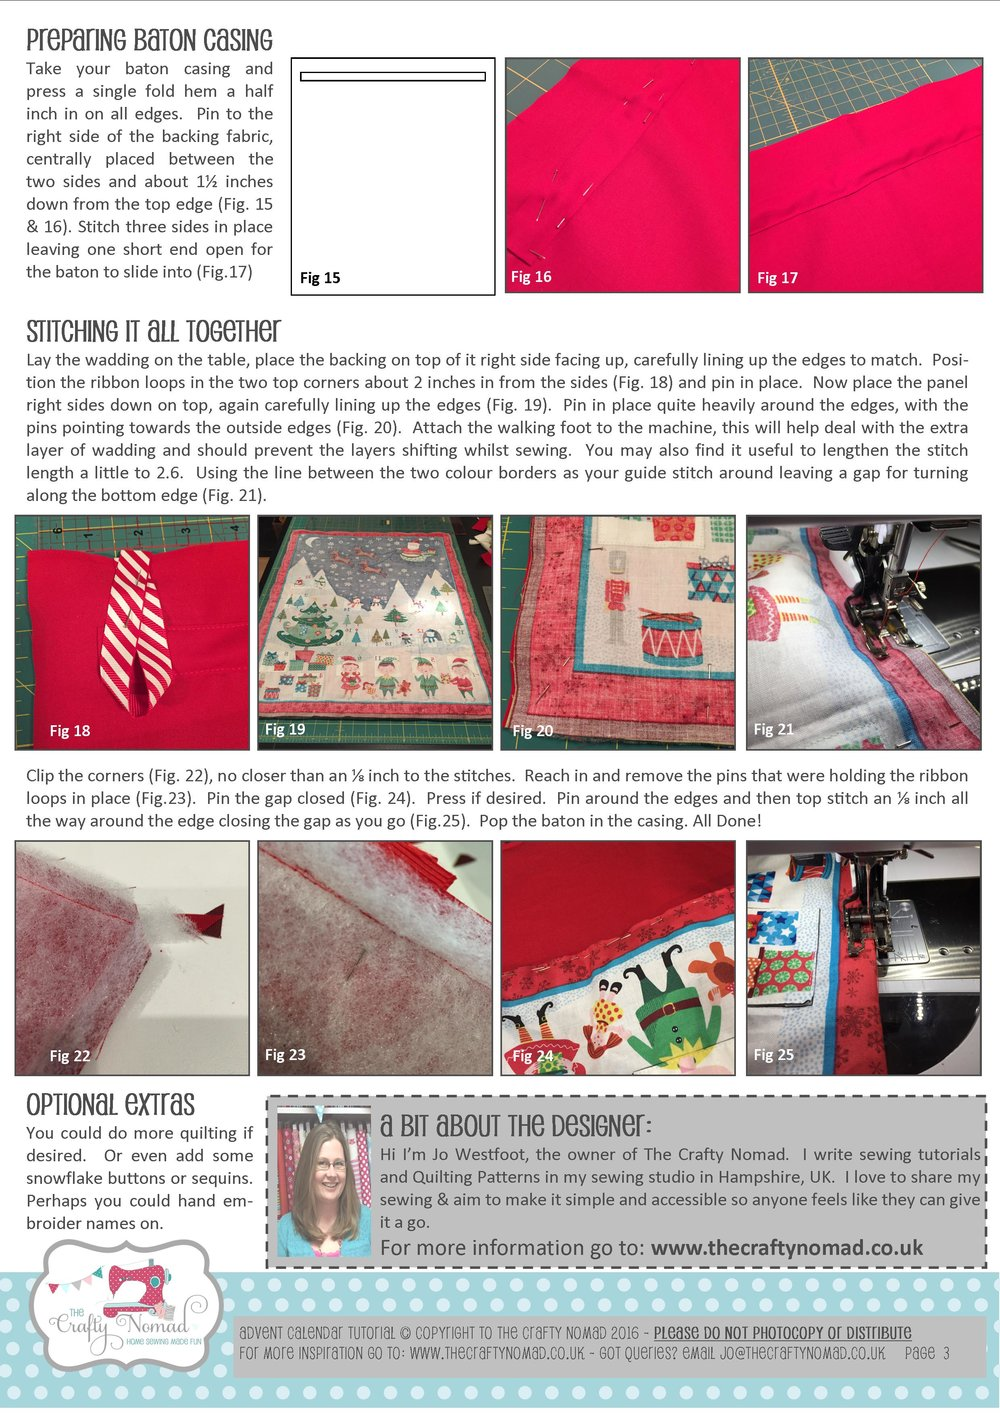 18 Advent Panel Tutorial Page 3 The Crafty Nomad.jpg